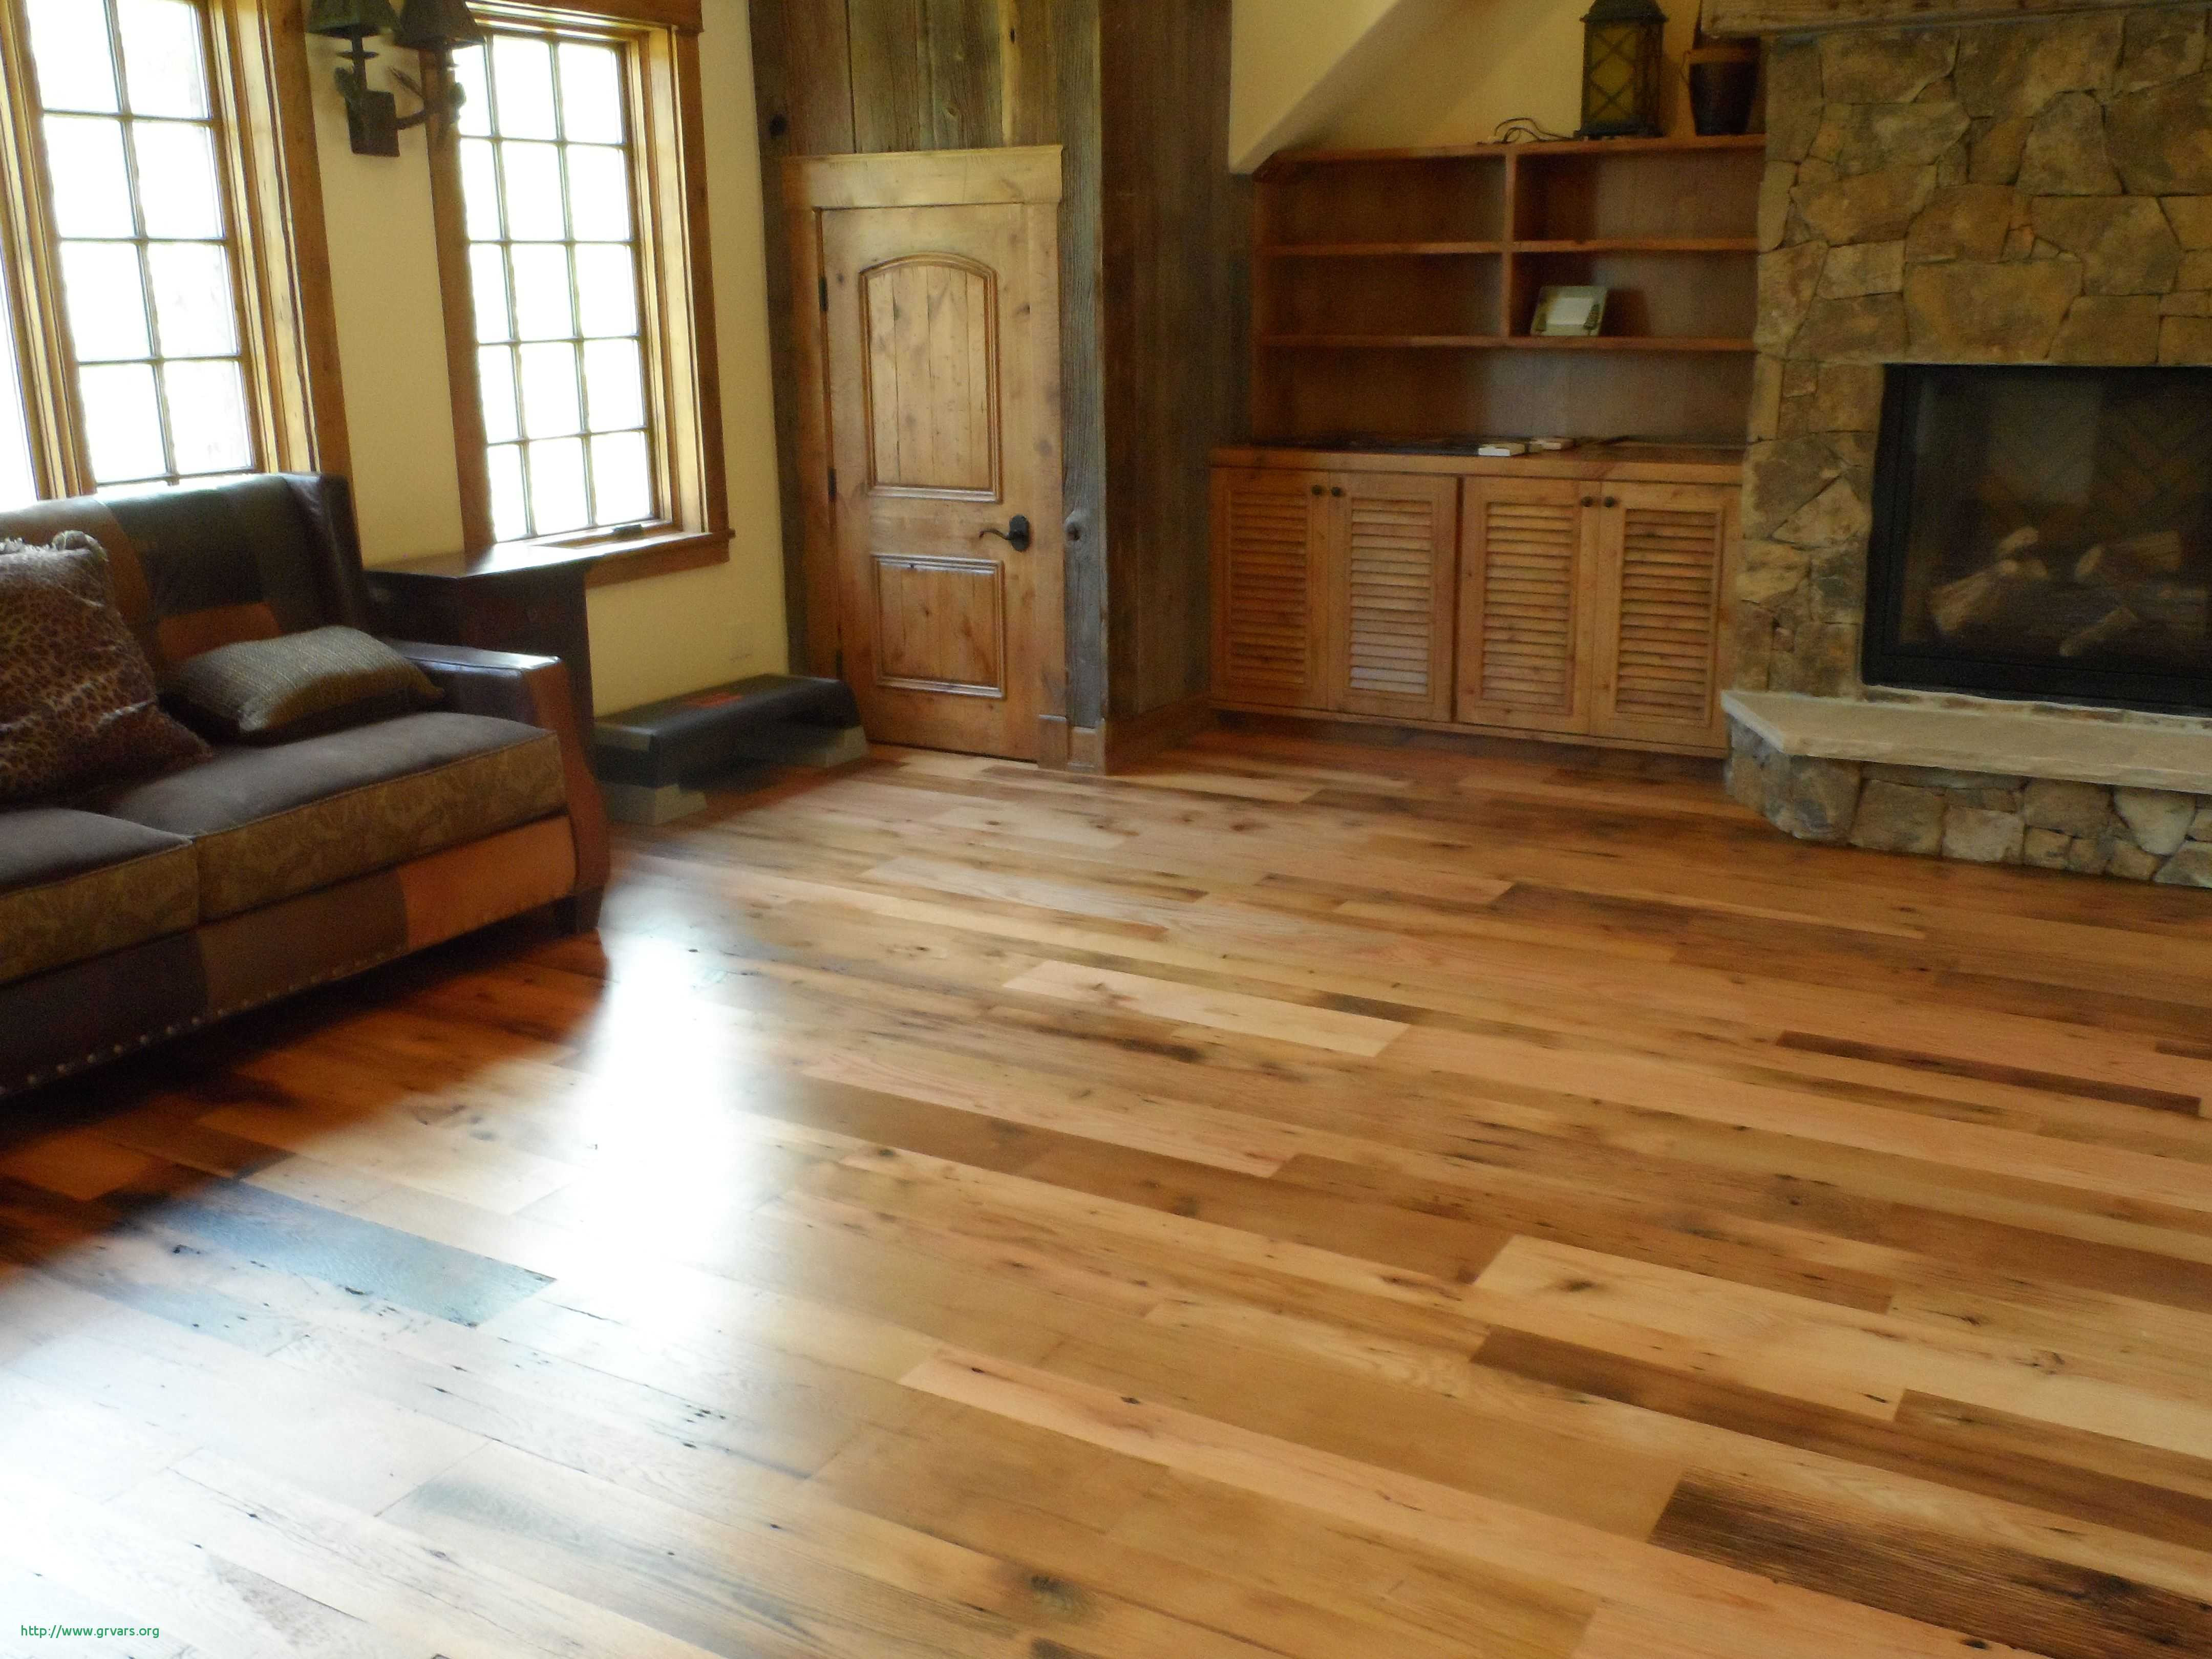 hardwood flooring trim molding of discount hardwood floors and molding beau how to diagnose and repair with regard to discount hardwood floors and molding nouveau custom hardwood floors trim and cabinets done by timberline framers